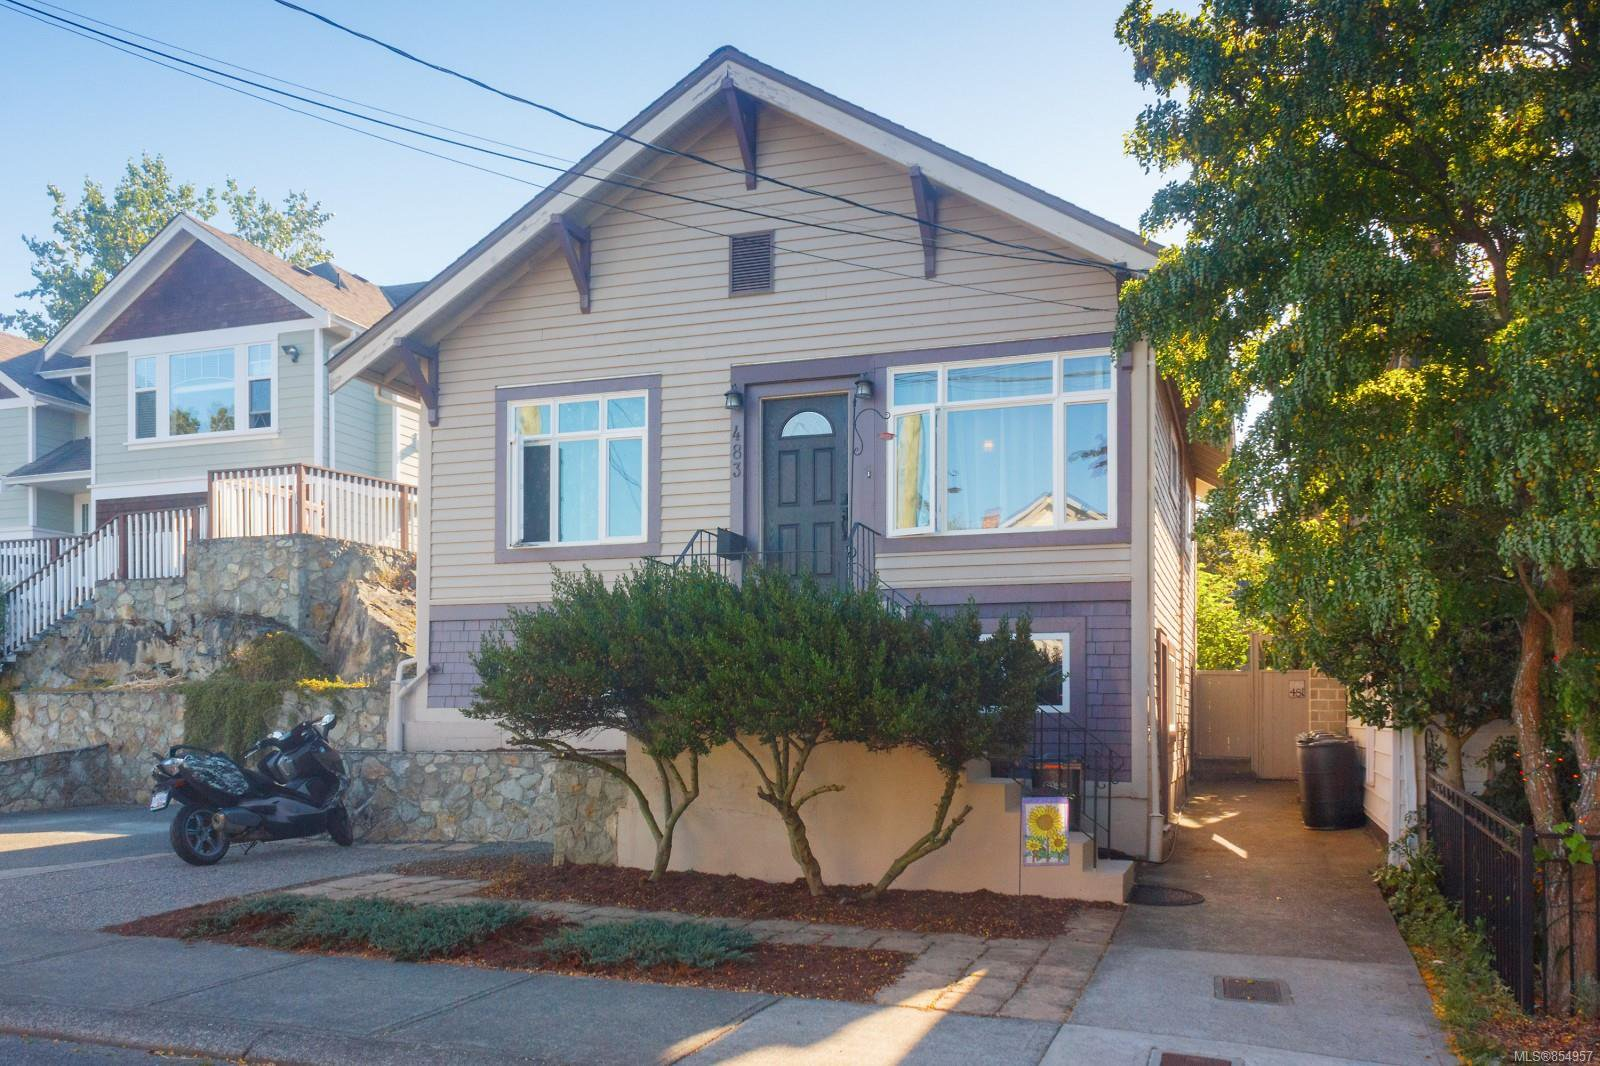 Main Photo: 483 Constance Ave in : Es Saxe Point House for sale (Esquimalt)  : MLS®# 854957